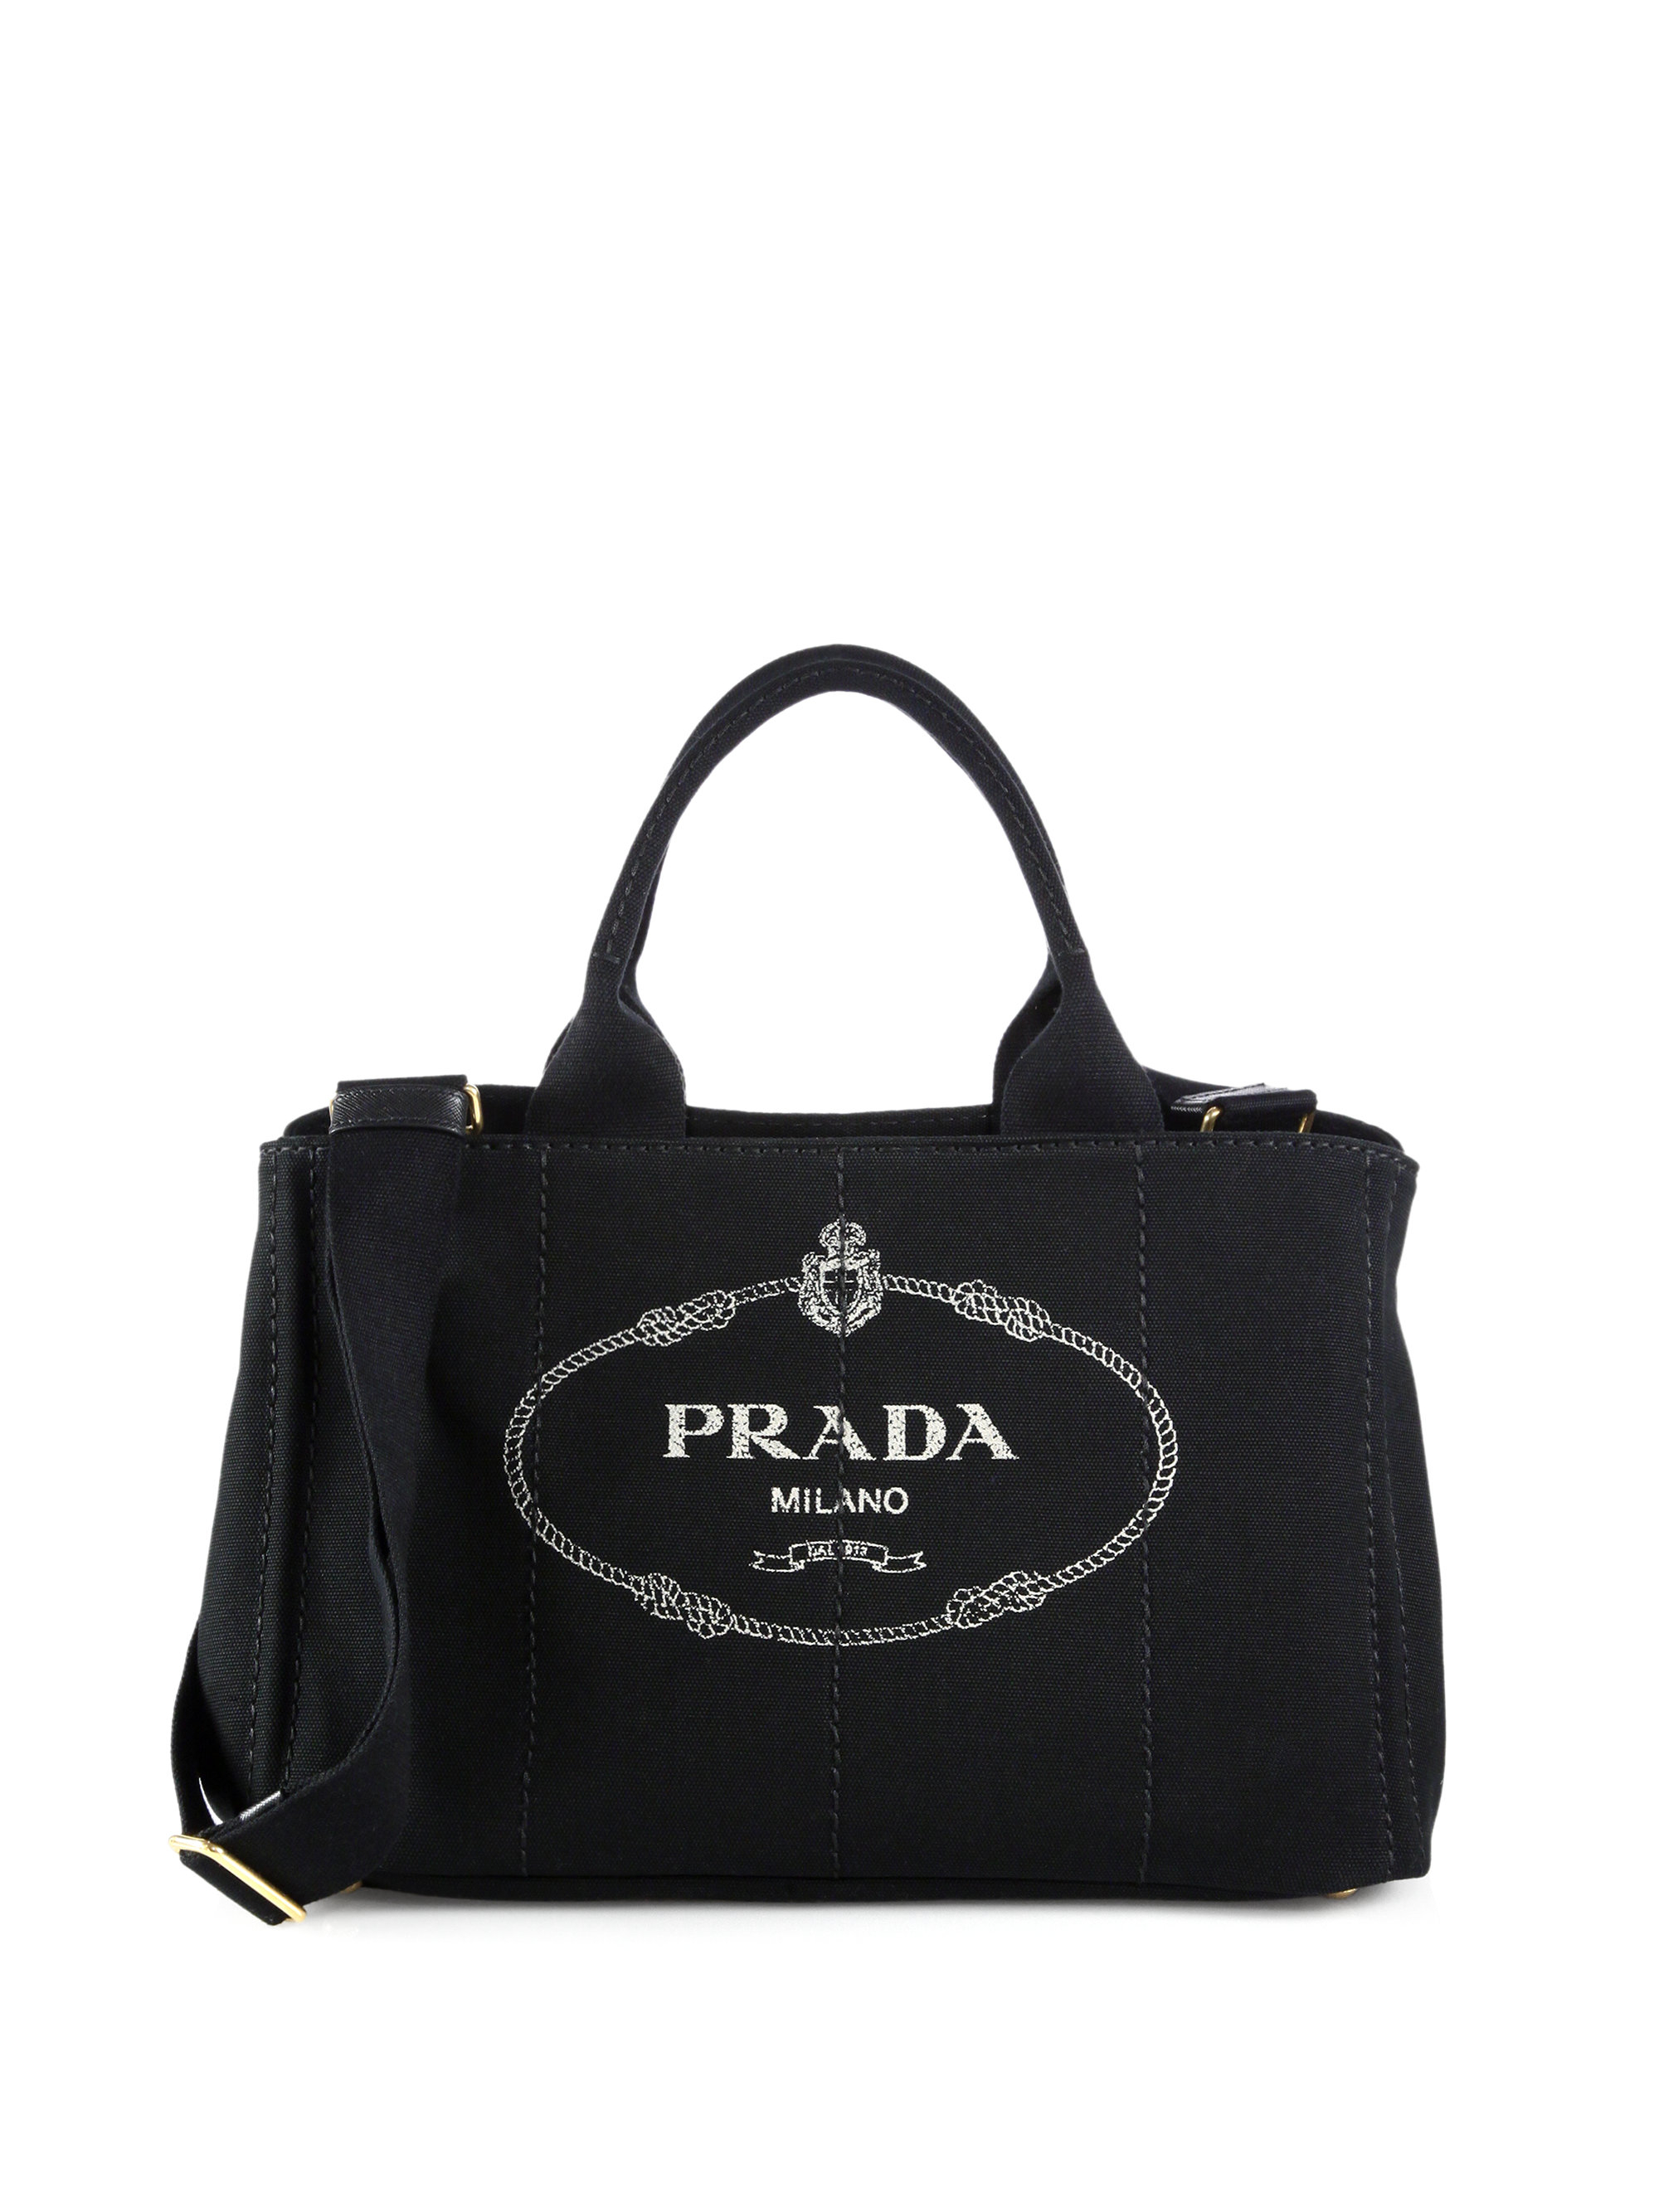 bde7343b86be Prada Canvas Bags Uk | Stanford Center for Opportunity Policy in ...